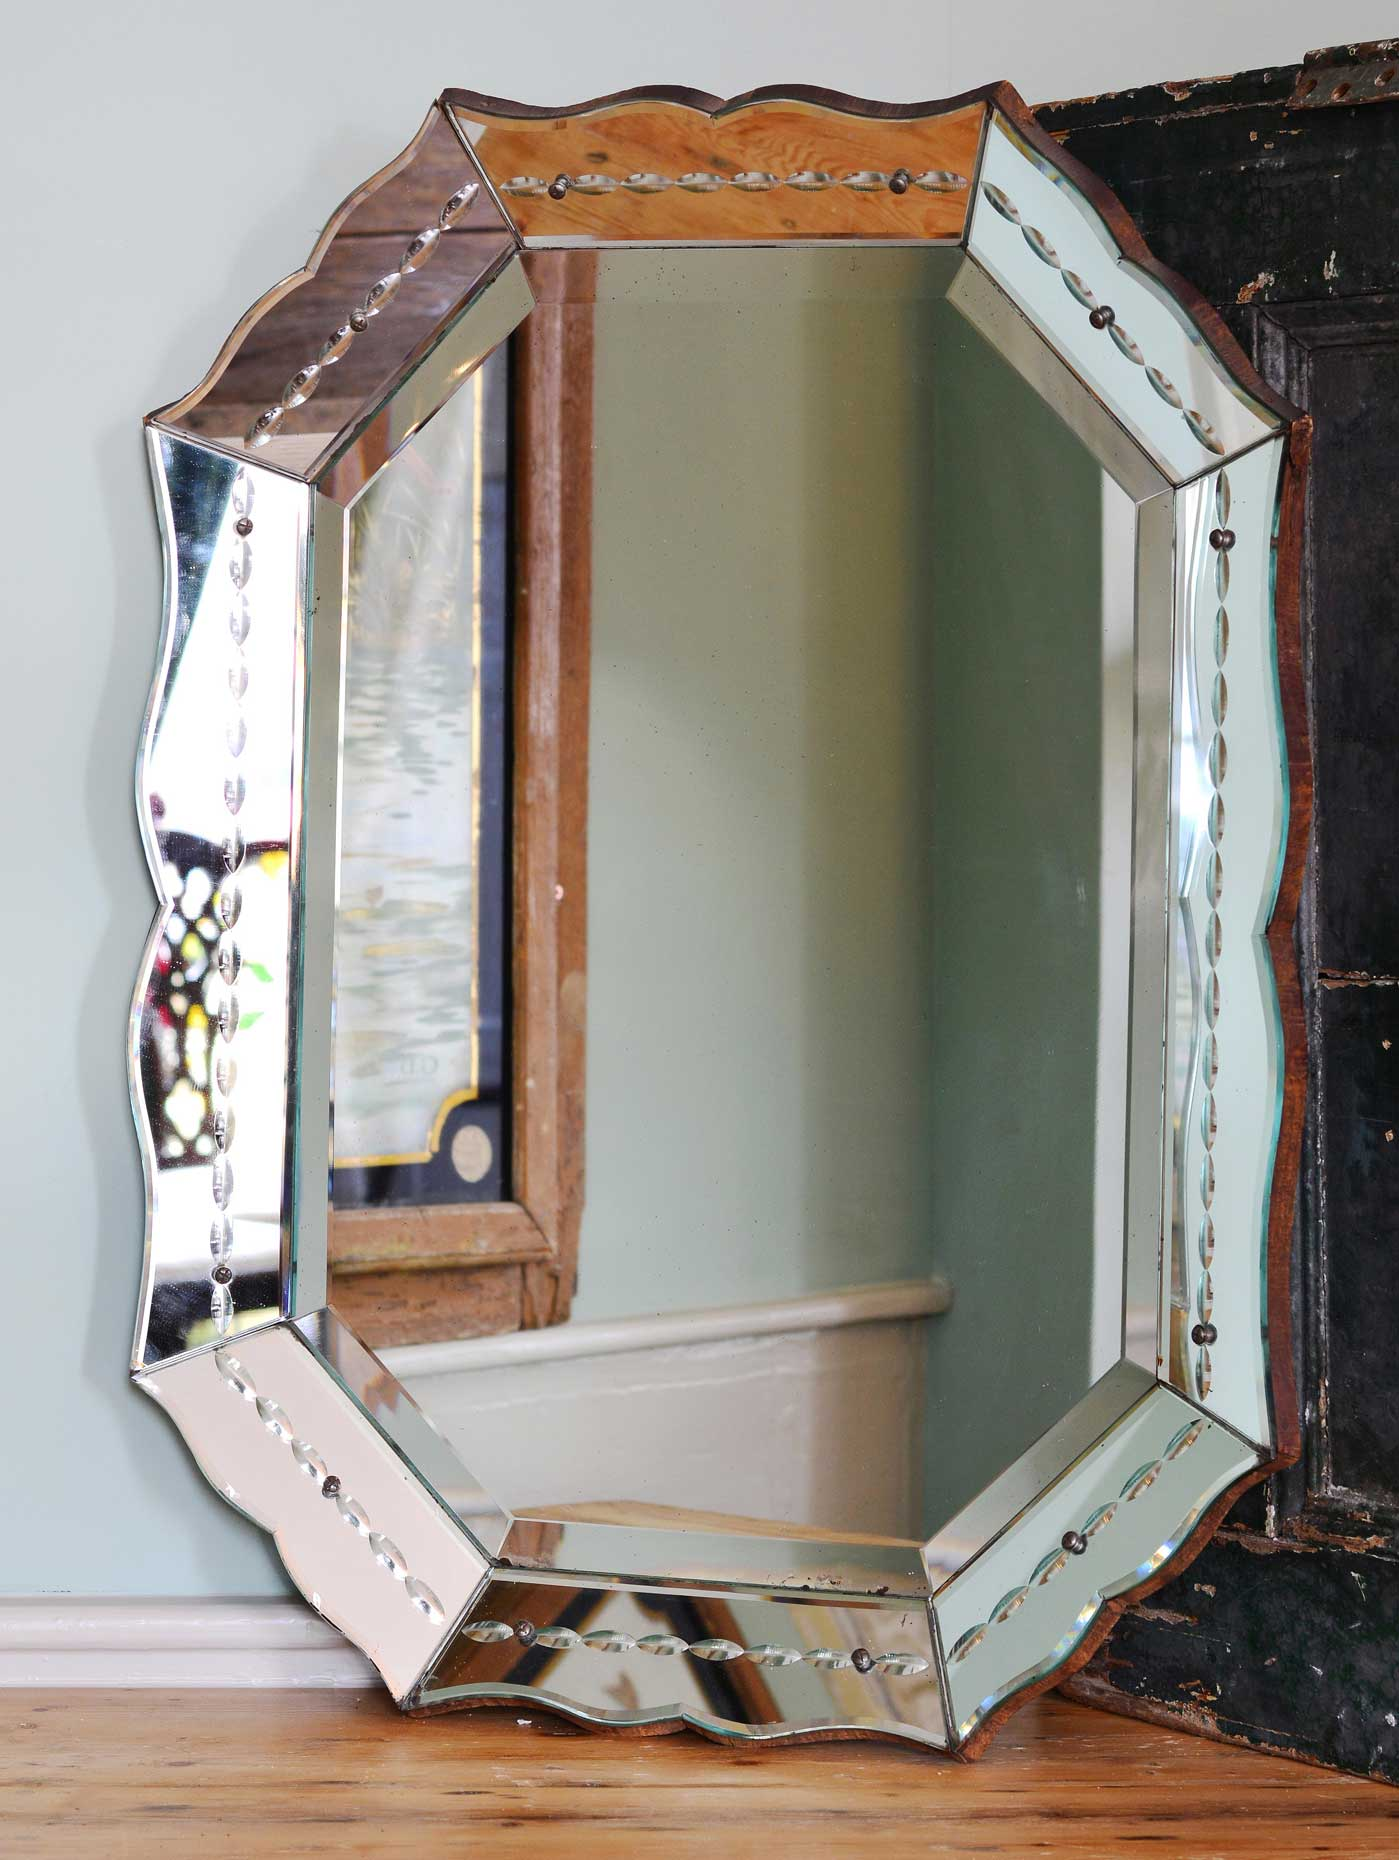 Lassco offers antique and vintage mirrors, either original or with new plate. www.lassco.co.uk